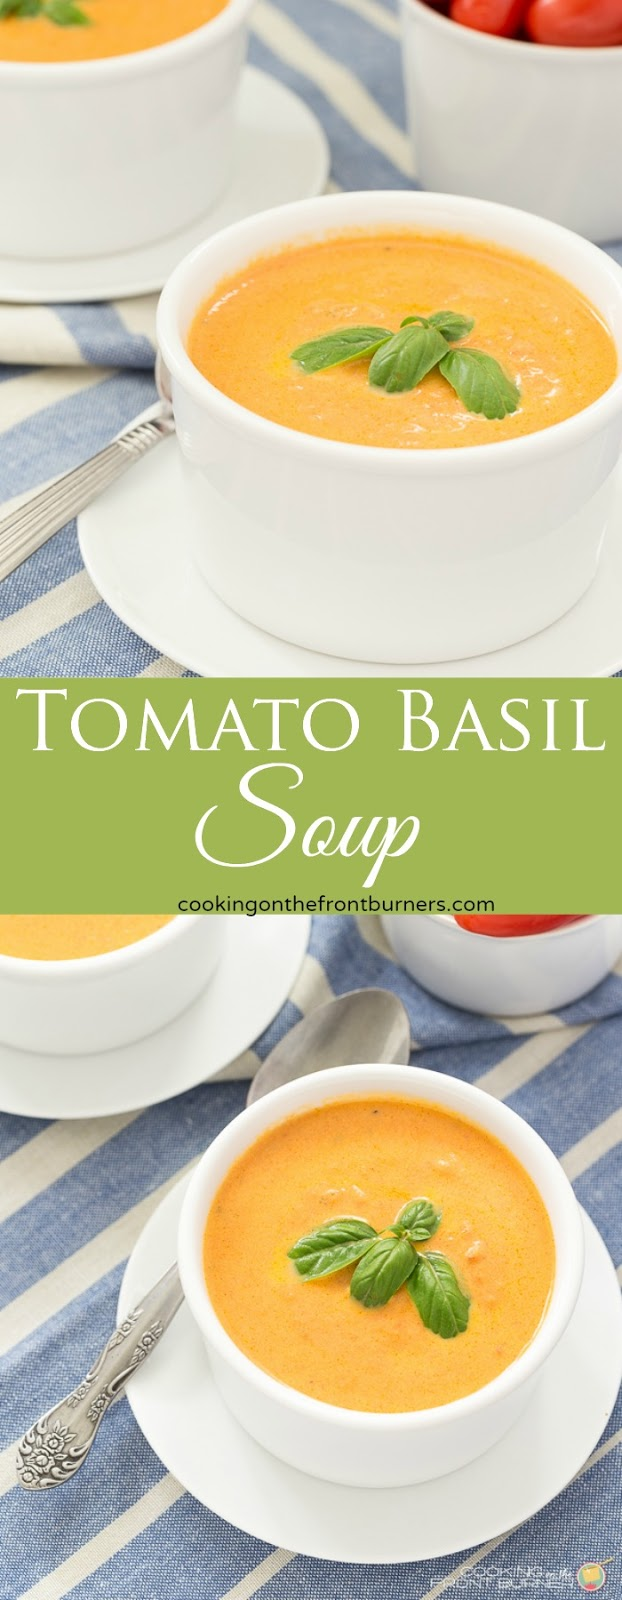 Homemade Tomato Basil Soup | Cooking on the Front Burner